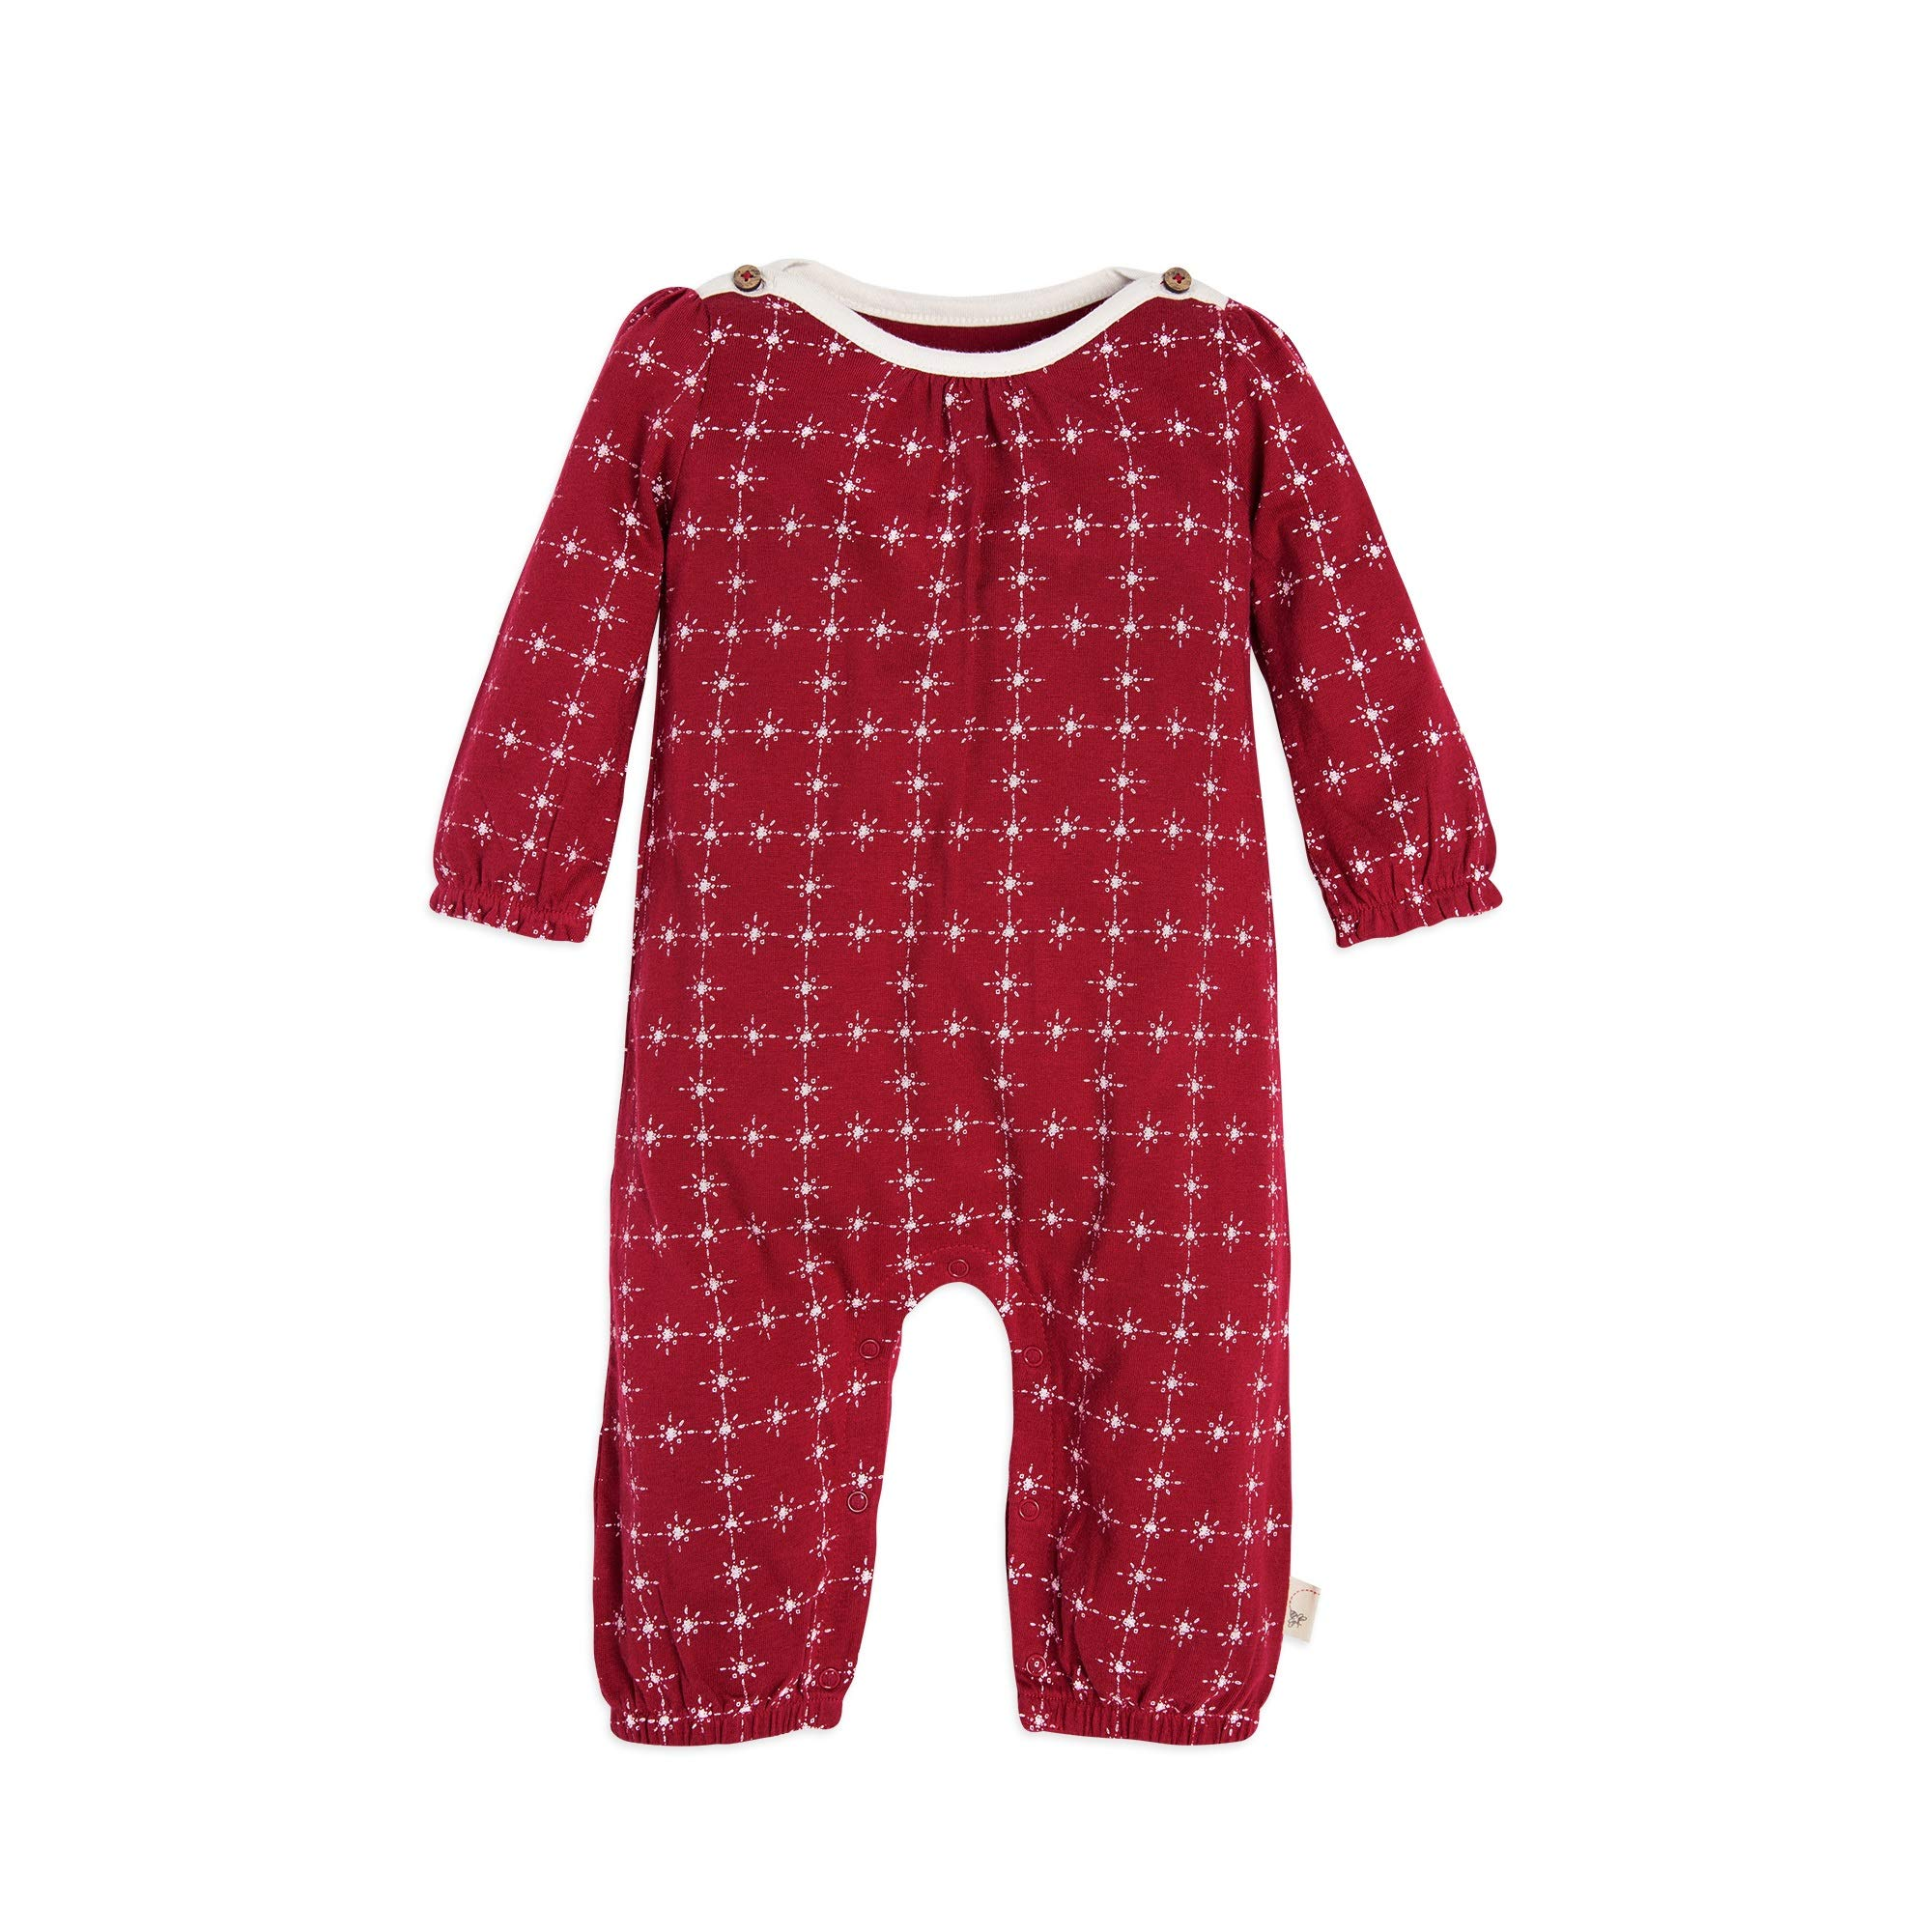 Burt's Bees Baby Girls Romper Jumpsuit, Long Sleeve One-Piece Coverall, 100% Organic Cotton, Cranberry North Star, 18 Months